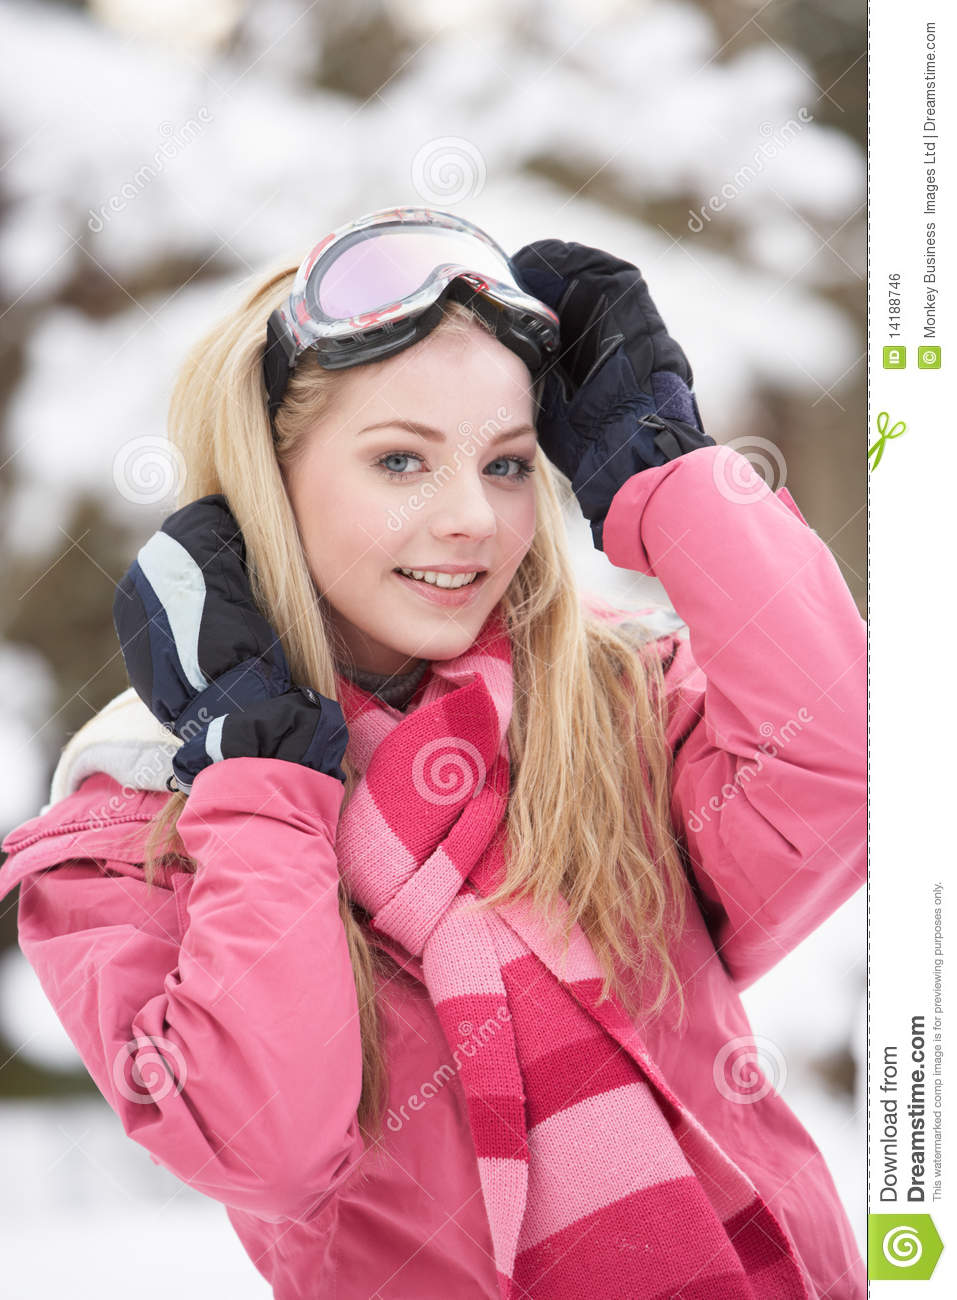 69ac6b44fc Teenage Girl Wearing Winter Clothes In Snow Stock Photo - Image of ...